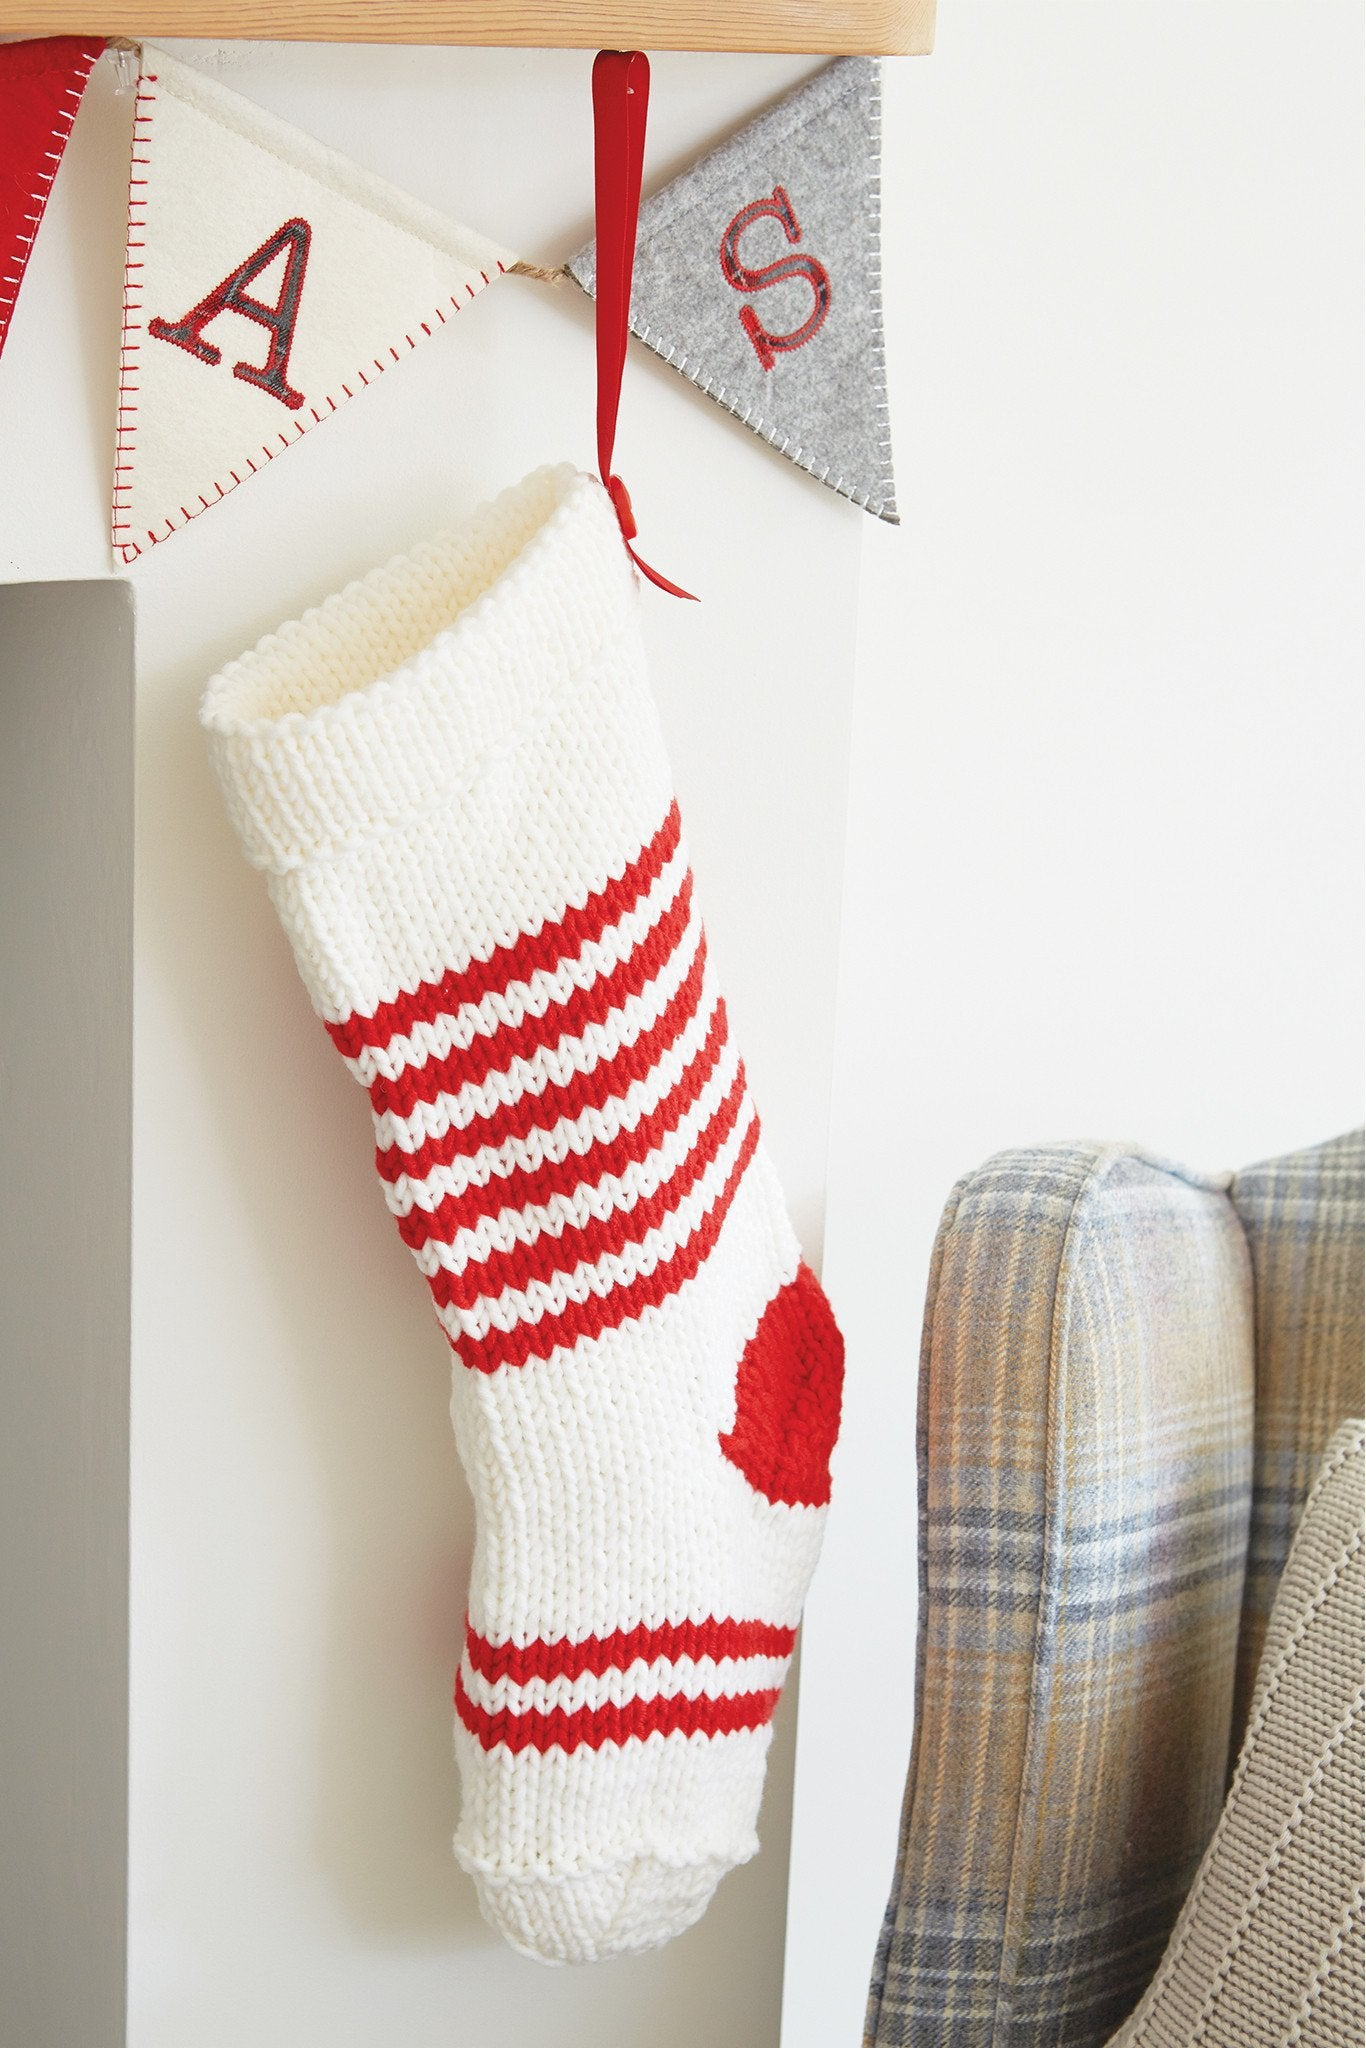 Christmas stocking knitting patterns the knitting network christmas stocking knitting patterns bankloansurffo Choice Image